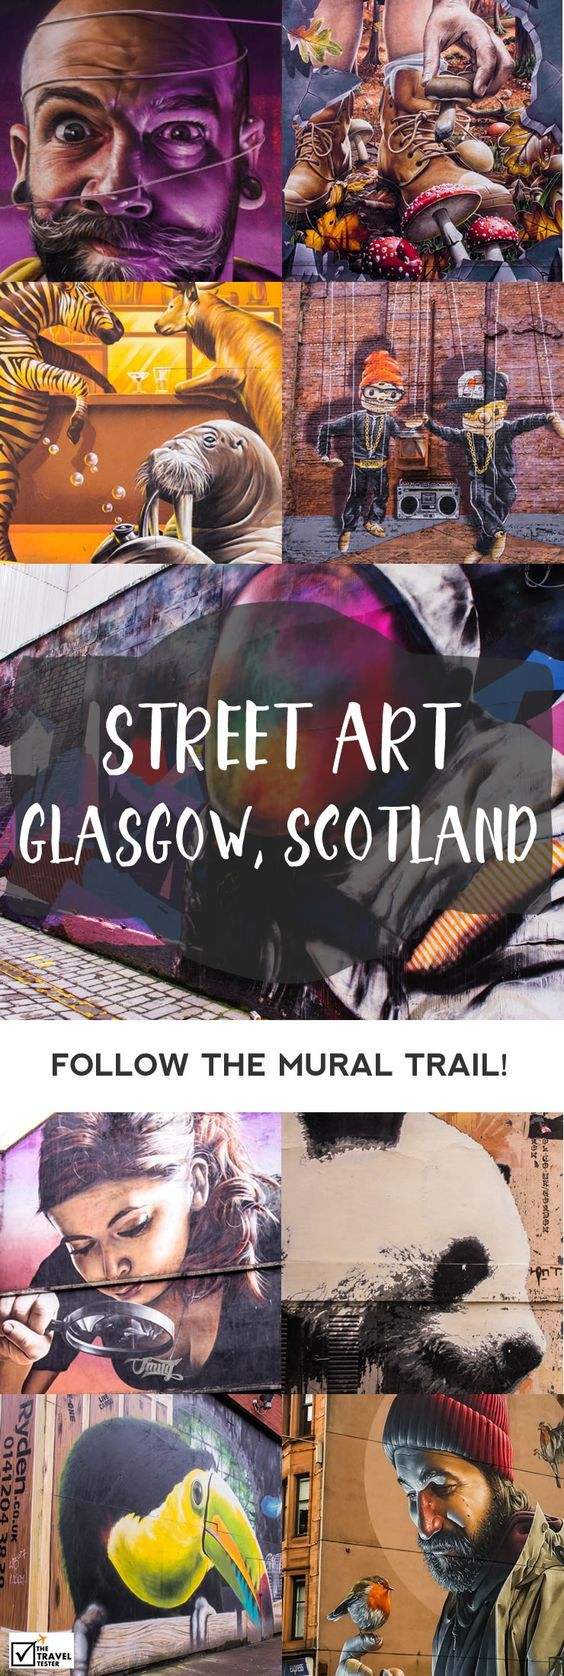 If you are a lover of street art, you will have a great time looking for the best design mural of Glasgow artists. The Travel Tester shows you where to go!